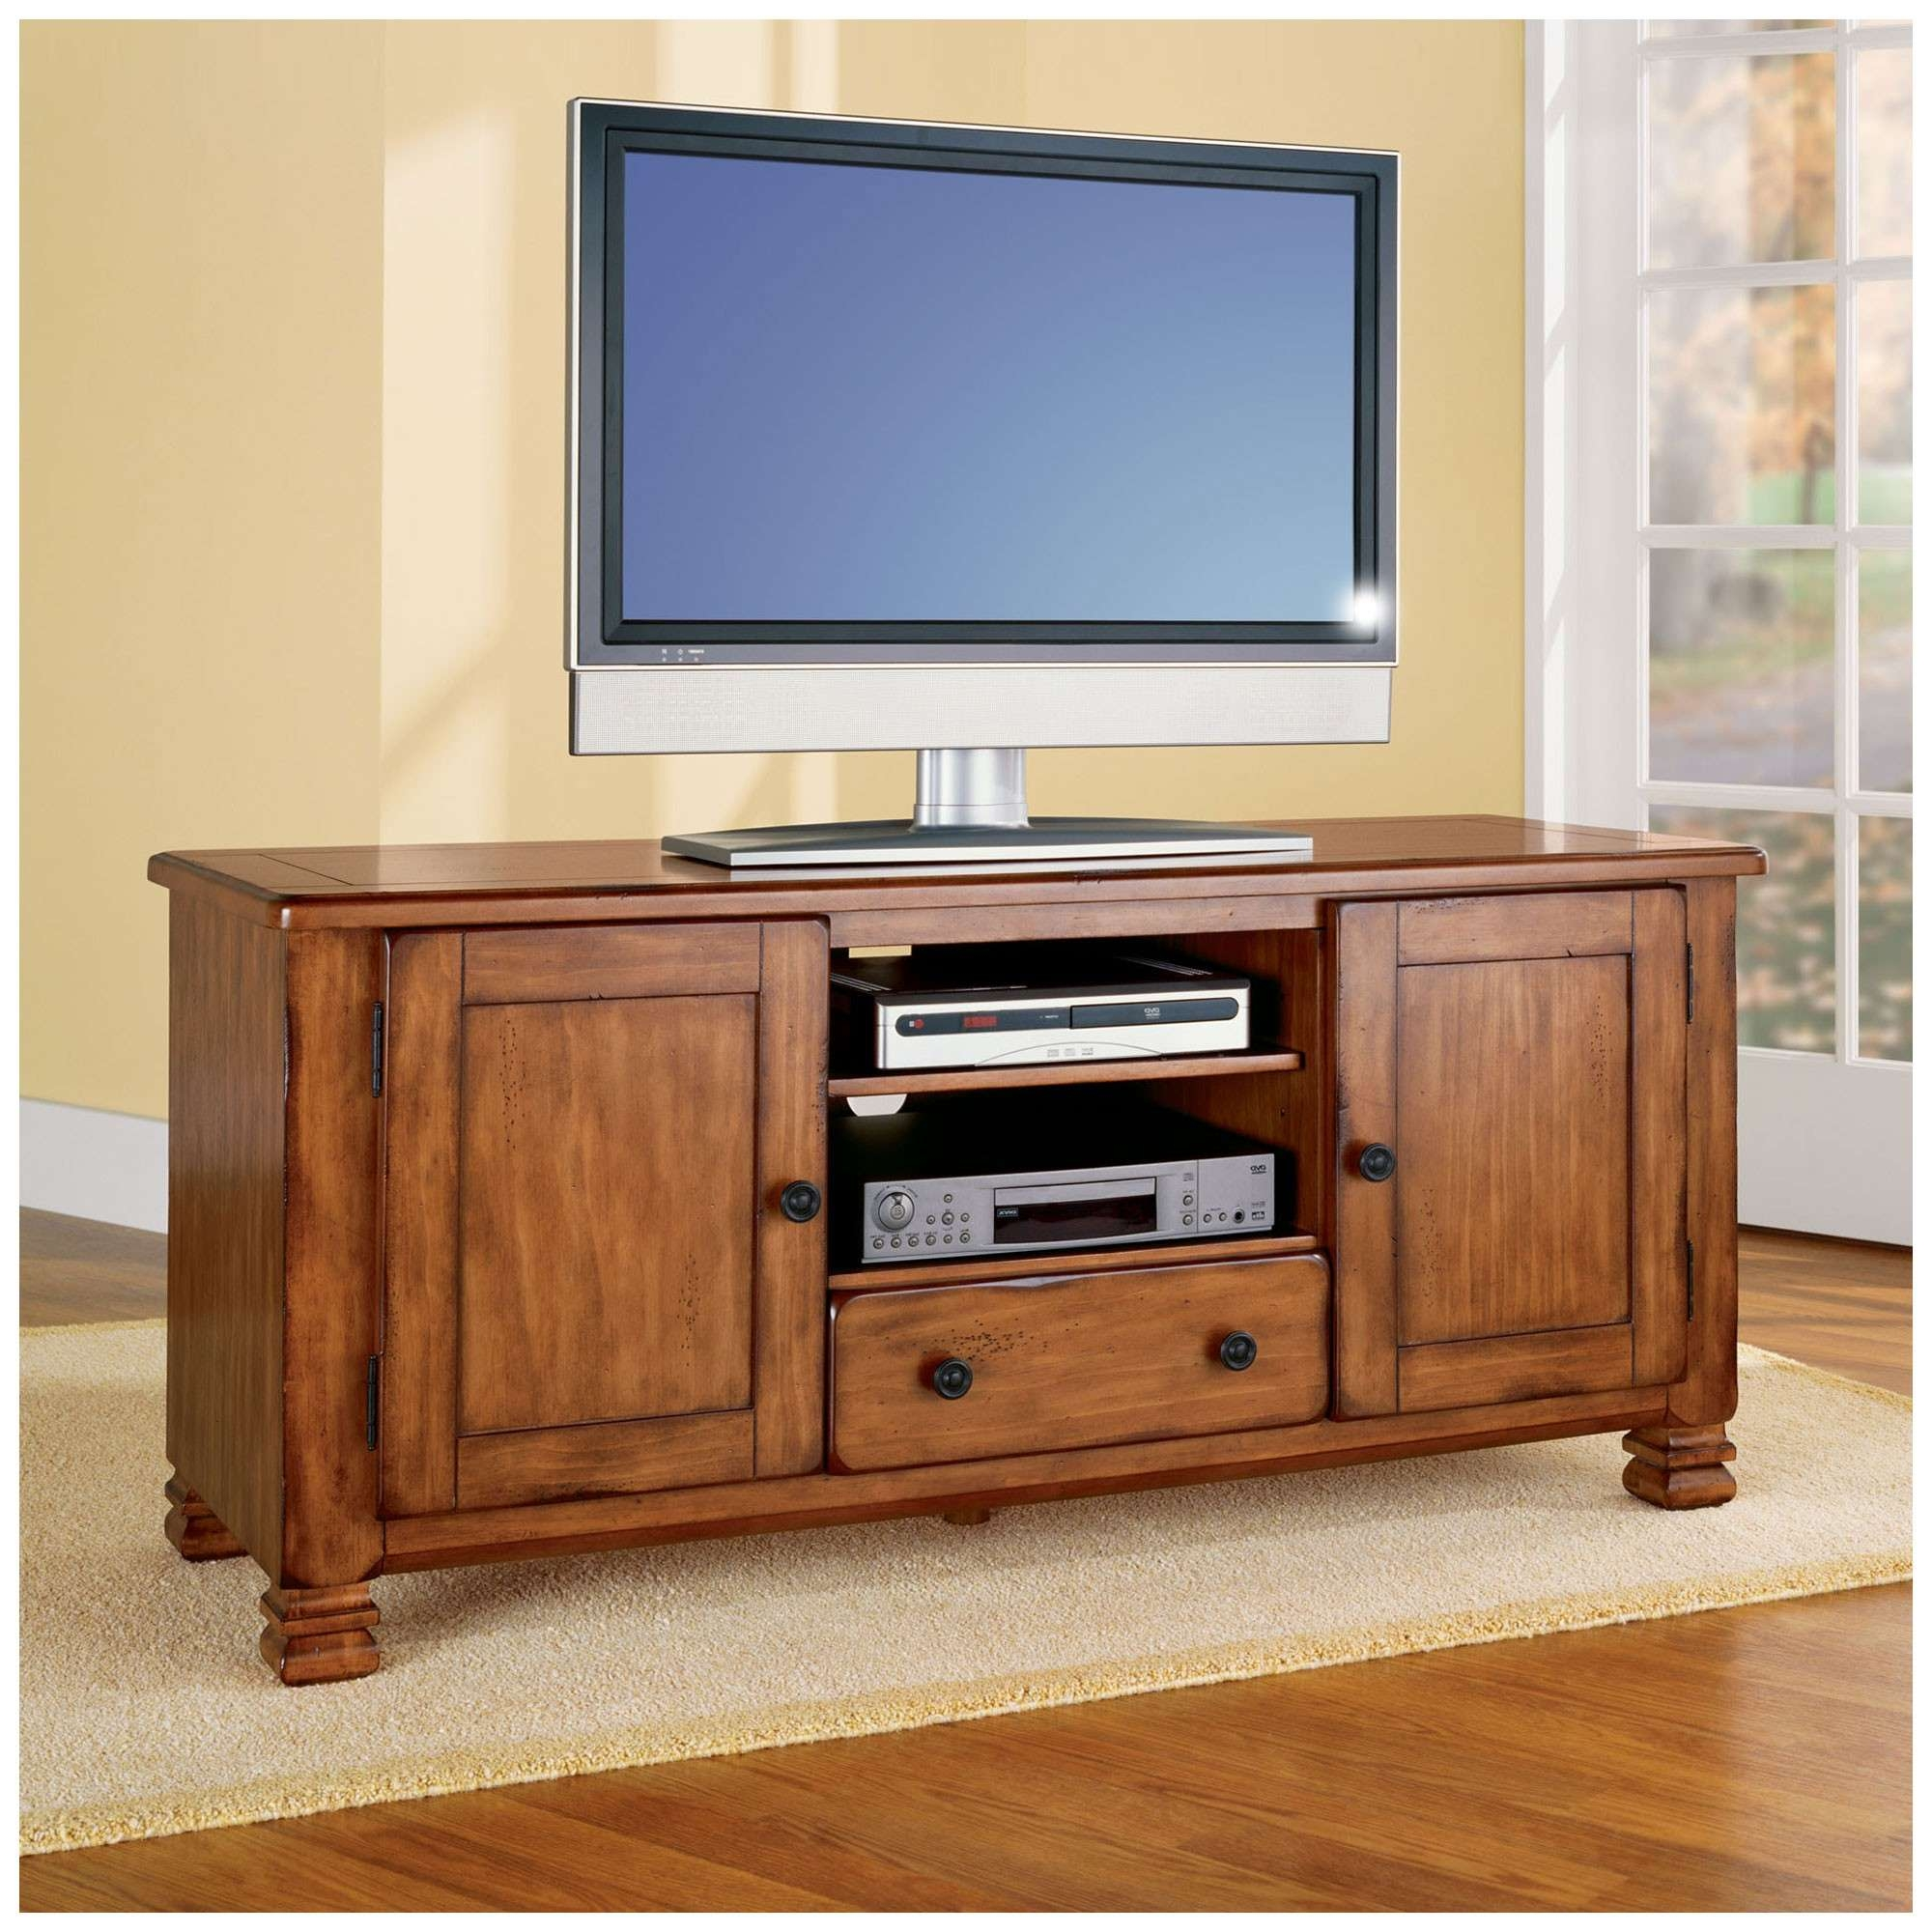 Fresh Cheap Cherry Wood Tv Stands Cabinets #17103 Regarding Cheap Oak Tv Stands (View 4 of 15)